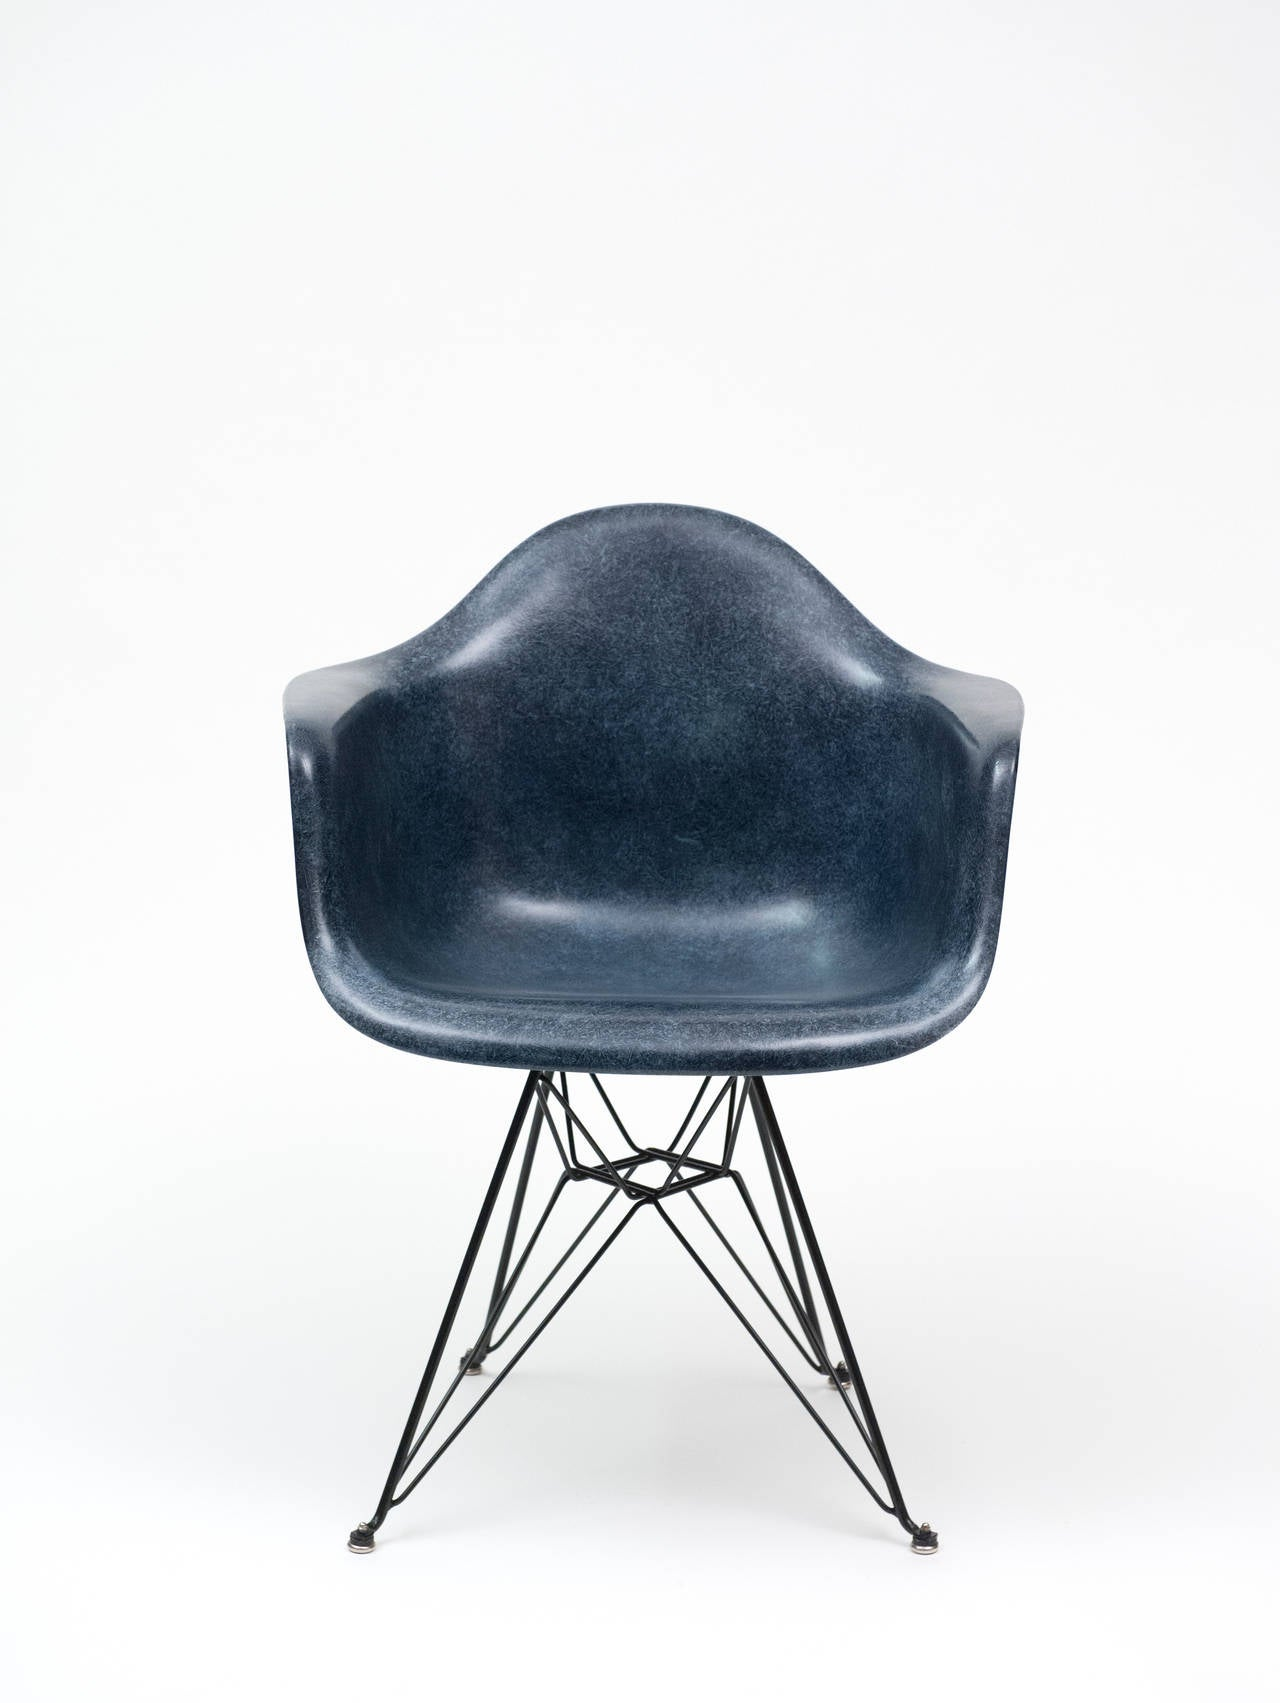 Eames Navy Blue Herman Miller Dar Shell Chair with Eiffel Tower